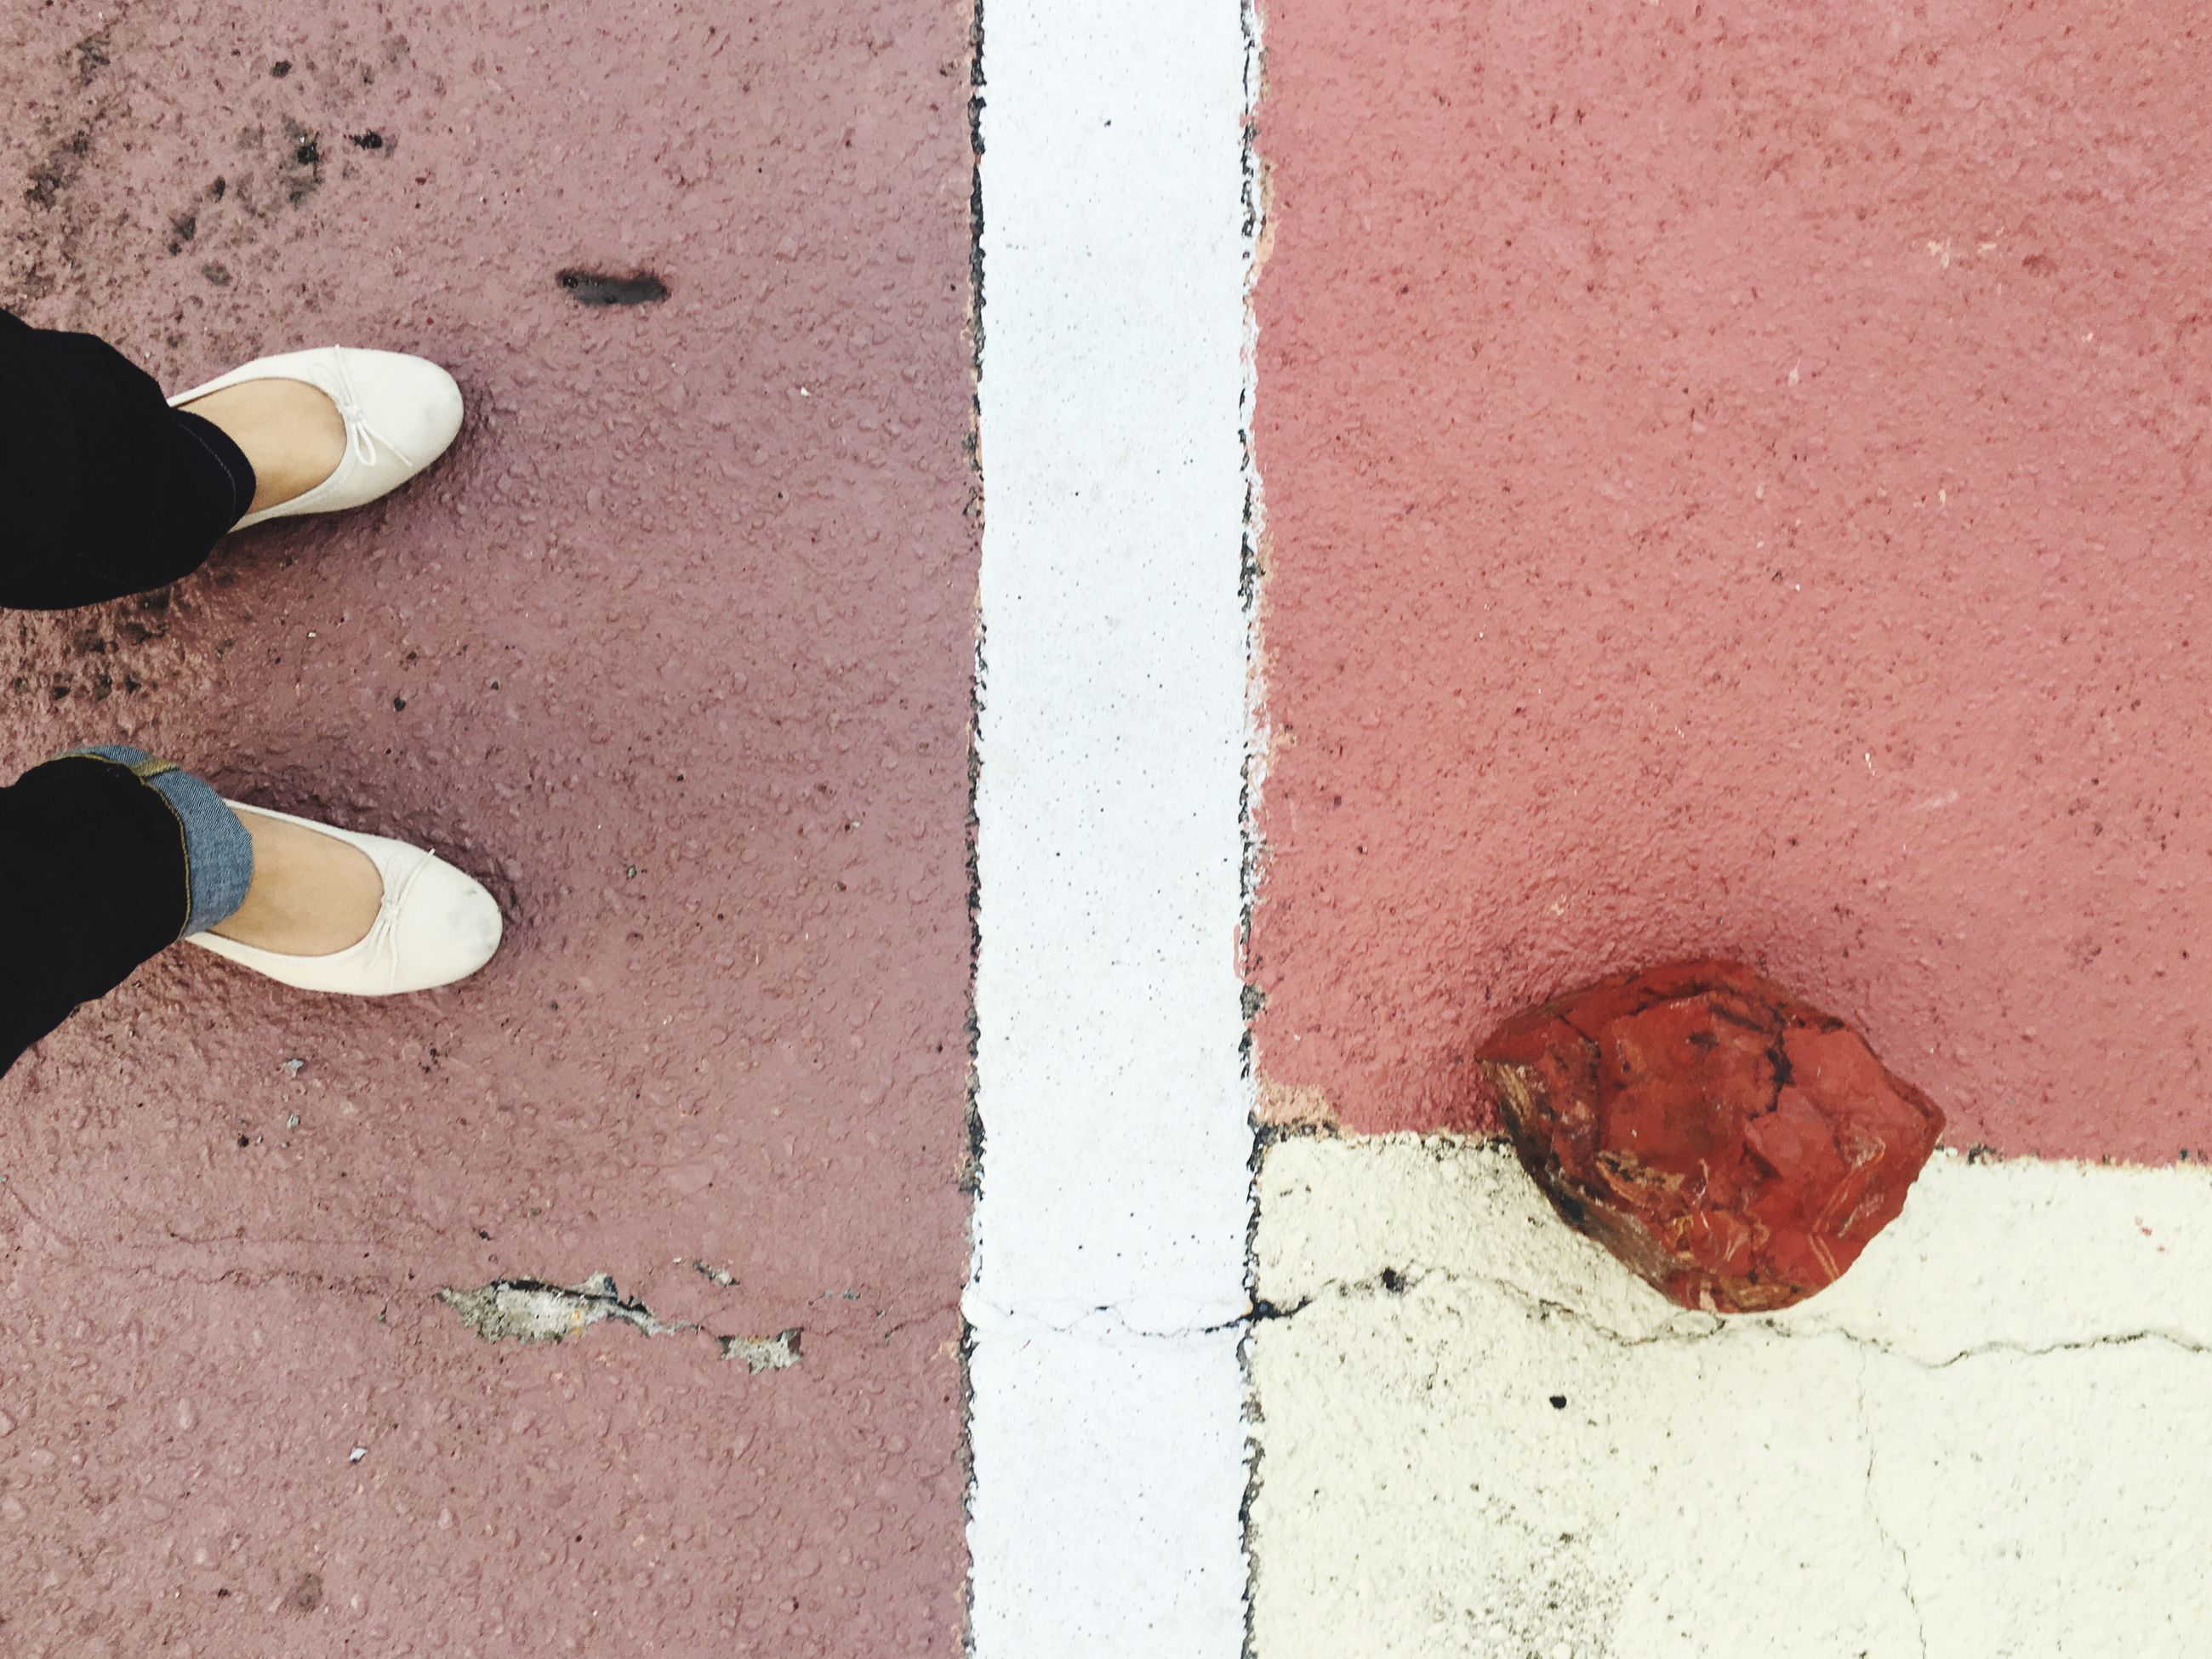 low section, shoe, standing, person, road, transportation, close-up, road marking, part of, red, line, day, outdoors, weathered